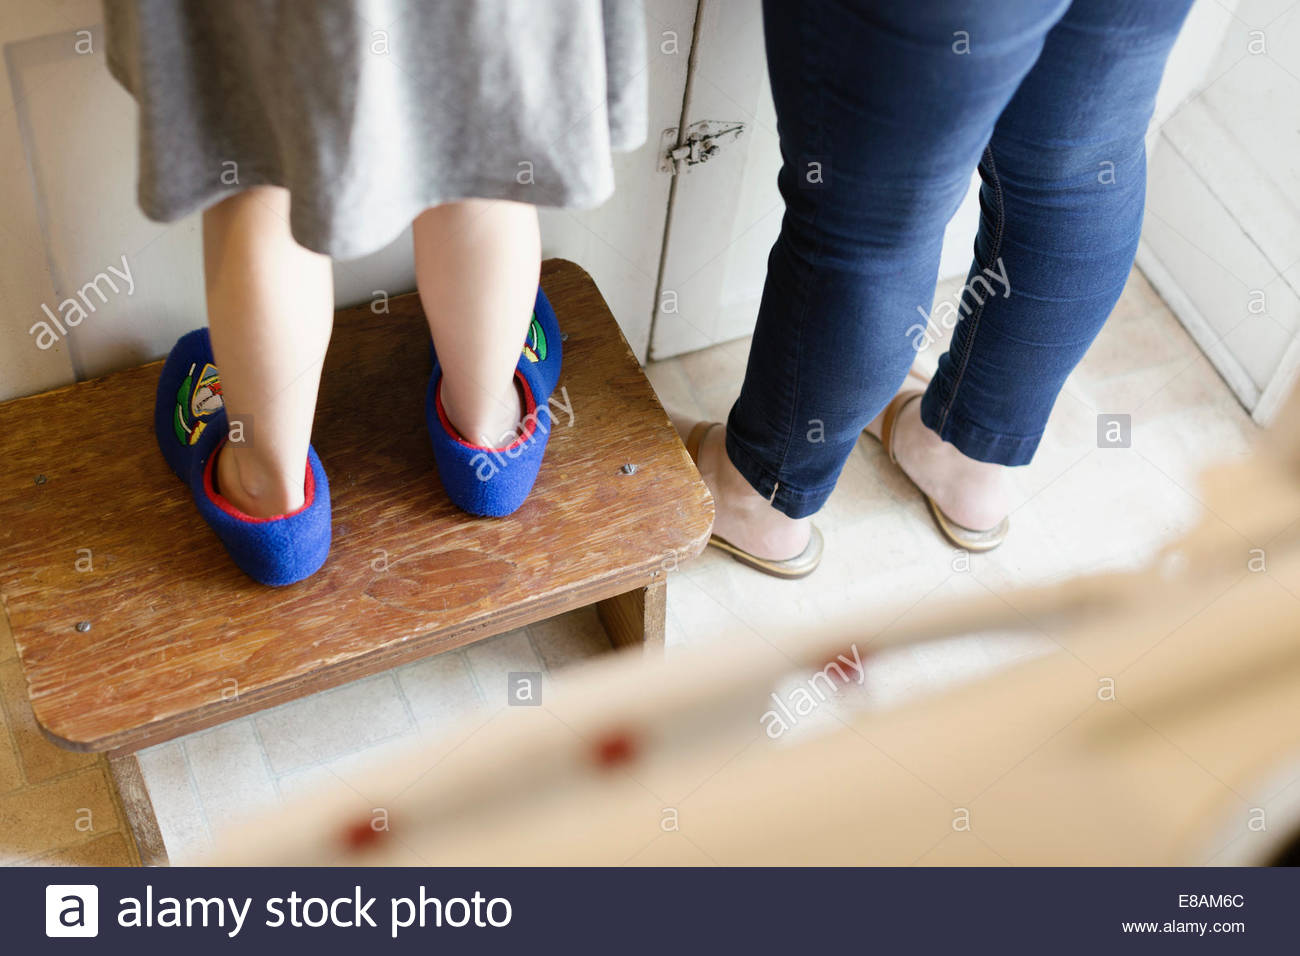 Legs of mid adult mother next to daughter standing on stool in kitchen Stock Foto